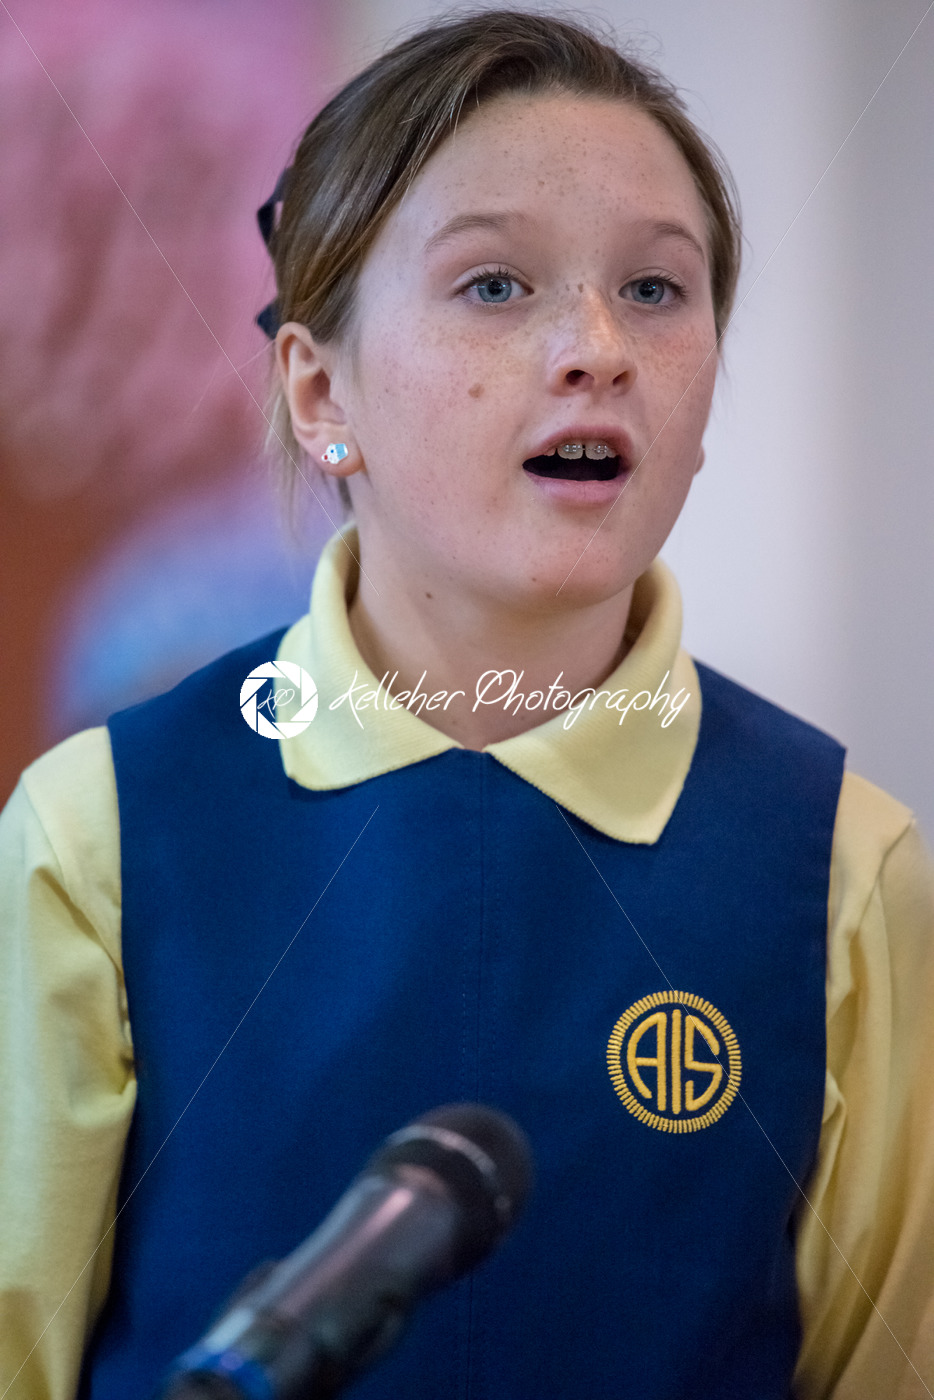 ROSEMONT, PA – DECEMBER 14: Winter Concert at The Agnes Irwin School - Kelleher Photography Store